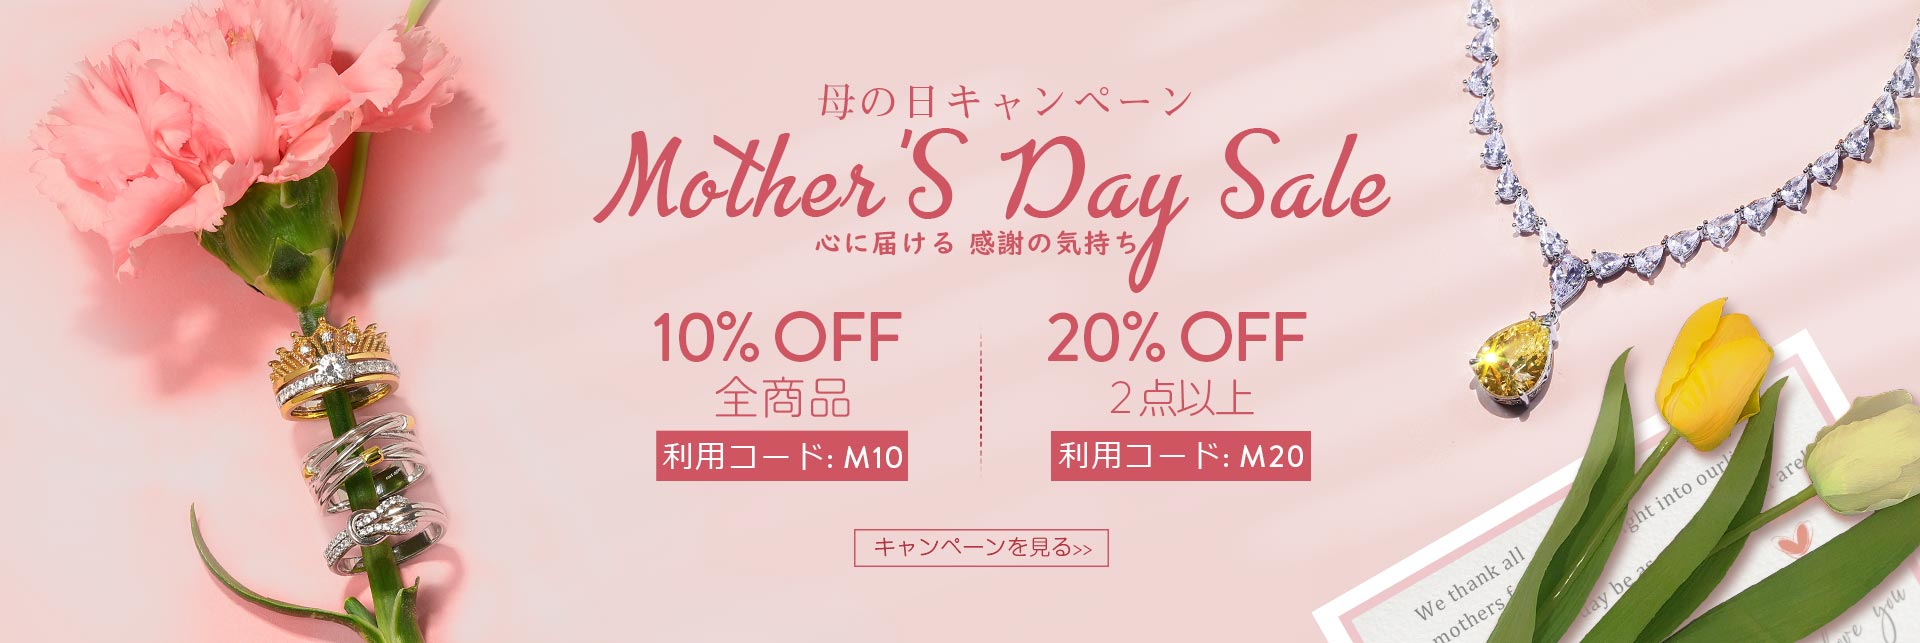 mother-s-day-sale-2021